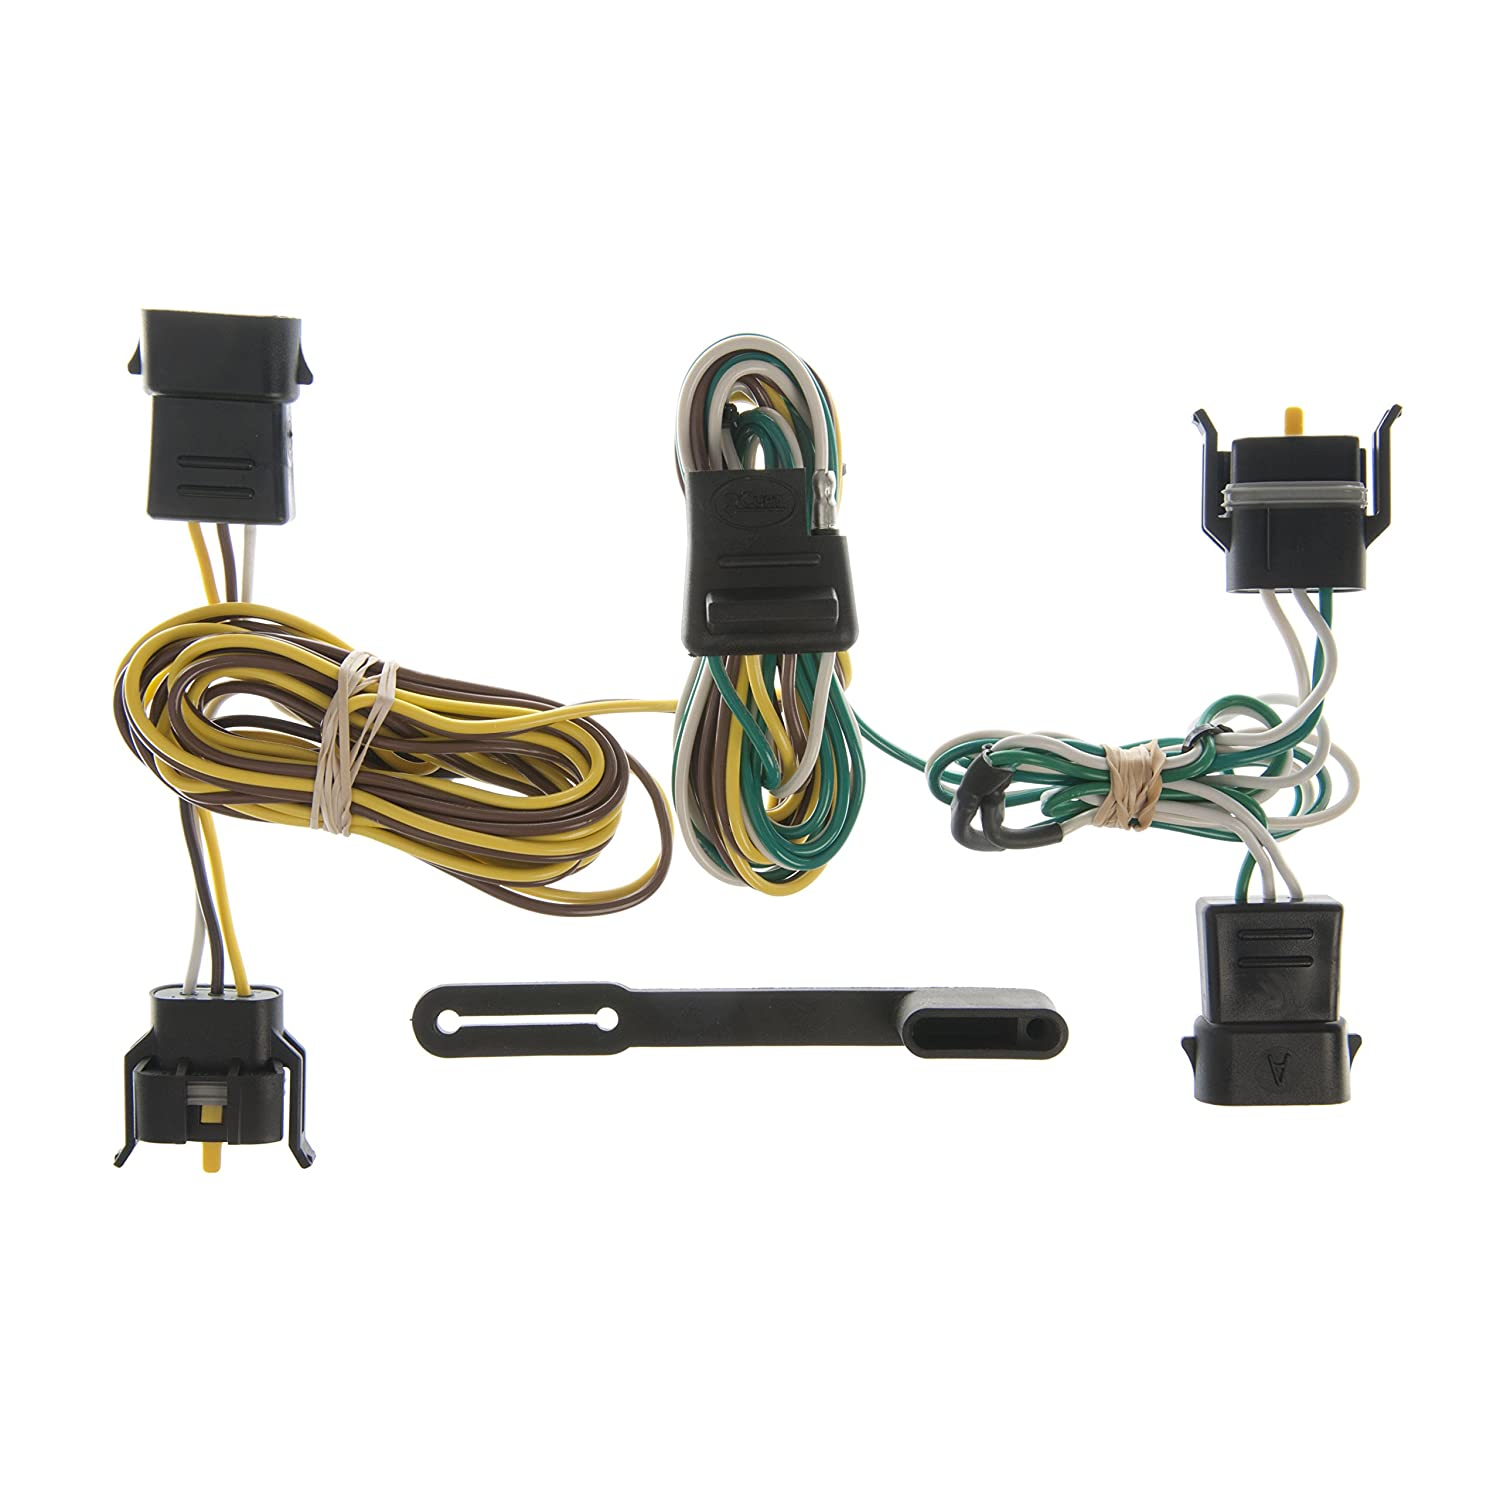 Curt Manufacturing 55344 Trailer Connector Automotive Drawtite Tconnector Wiring Harnesses Harness